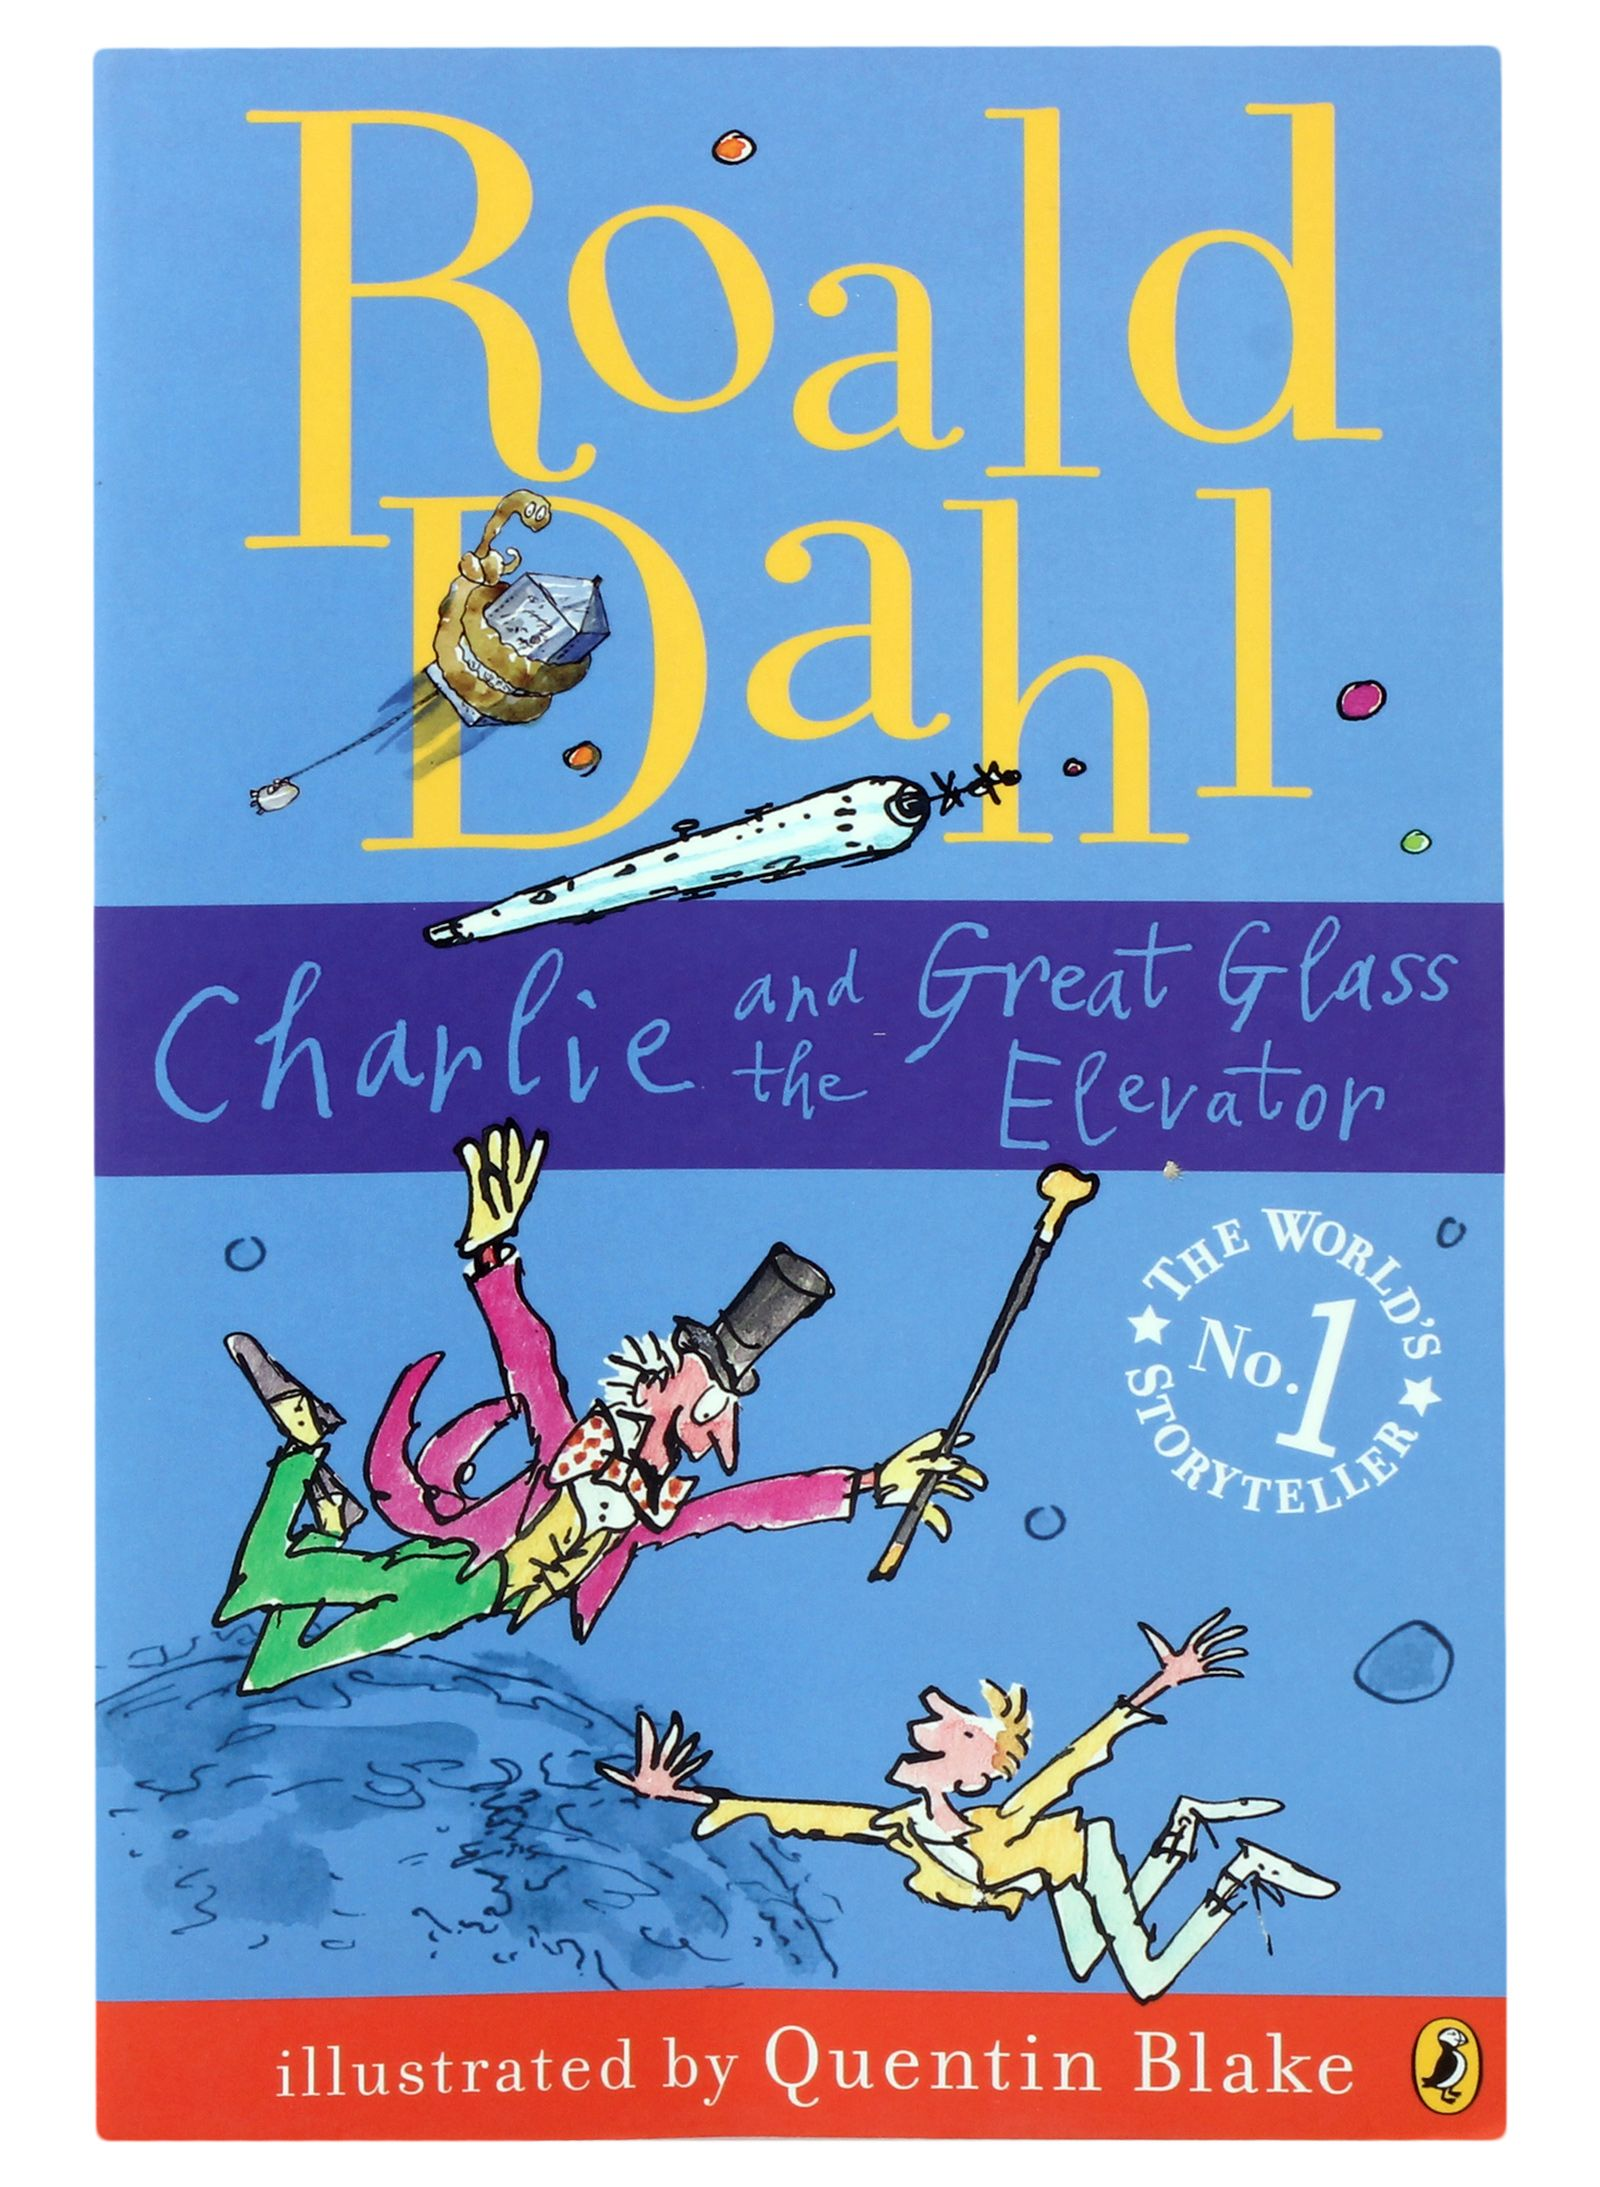 roald dahl charlie and the great glass elevator book report Editions for charlie and the great glass elevator: 0142404128 (paperback published in 2005), 0141301120 (paperback published in 1998), 0142410322 (paperb.